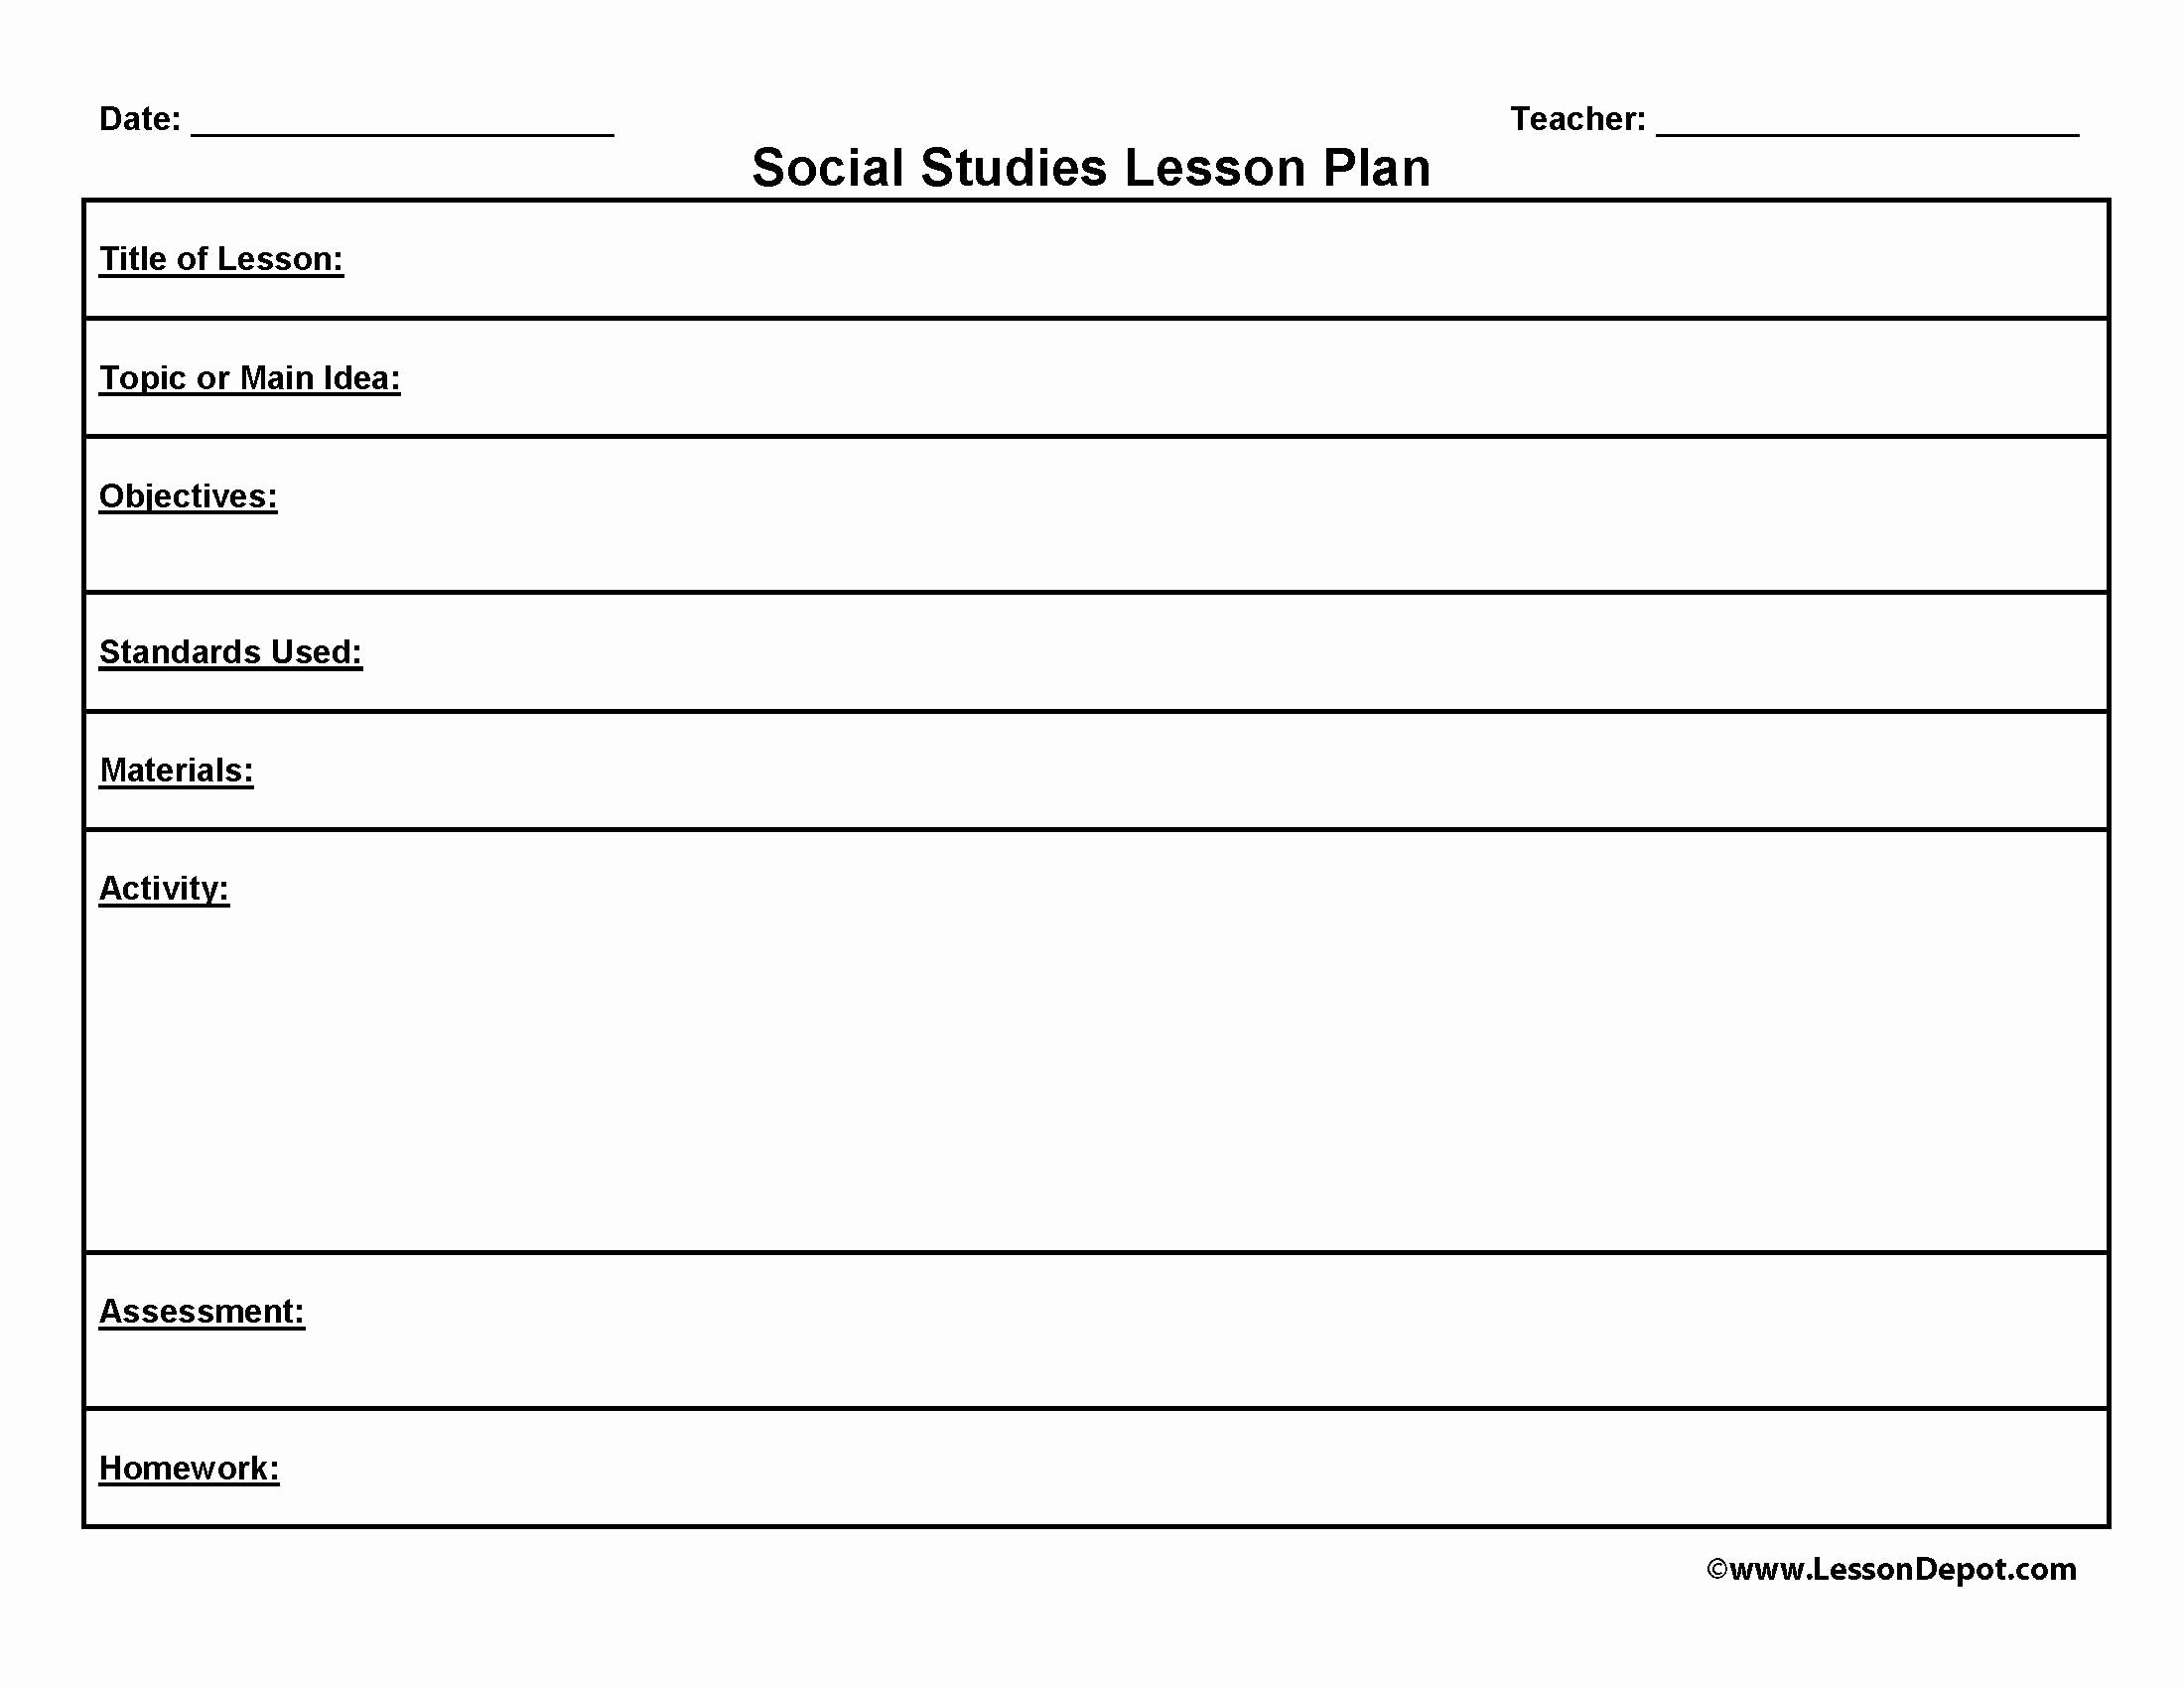 Umd 4 Year Plan Template Unique Lesson Plan format